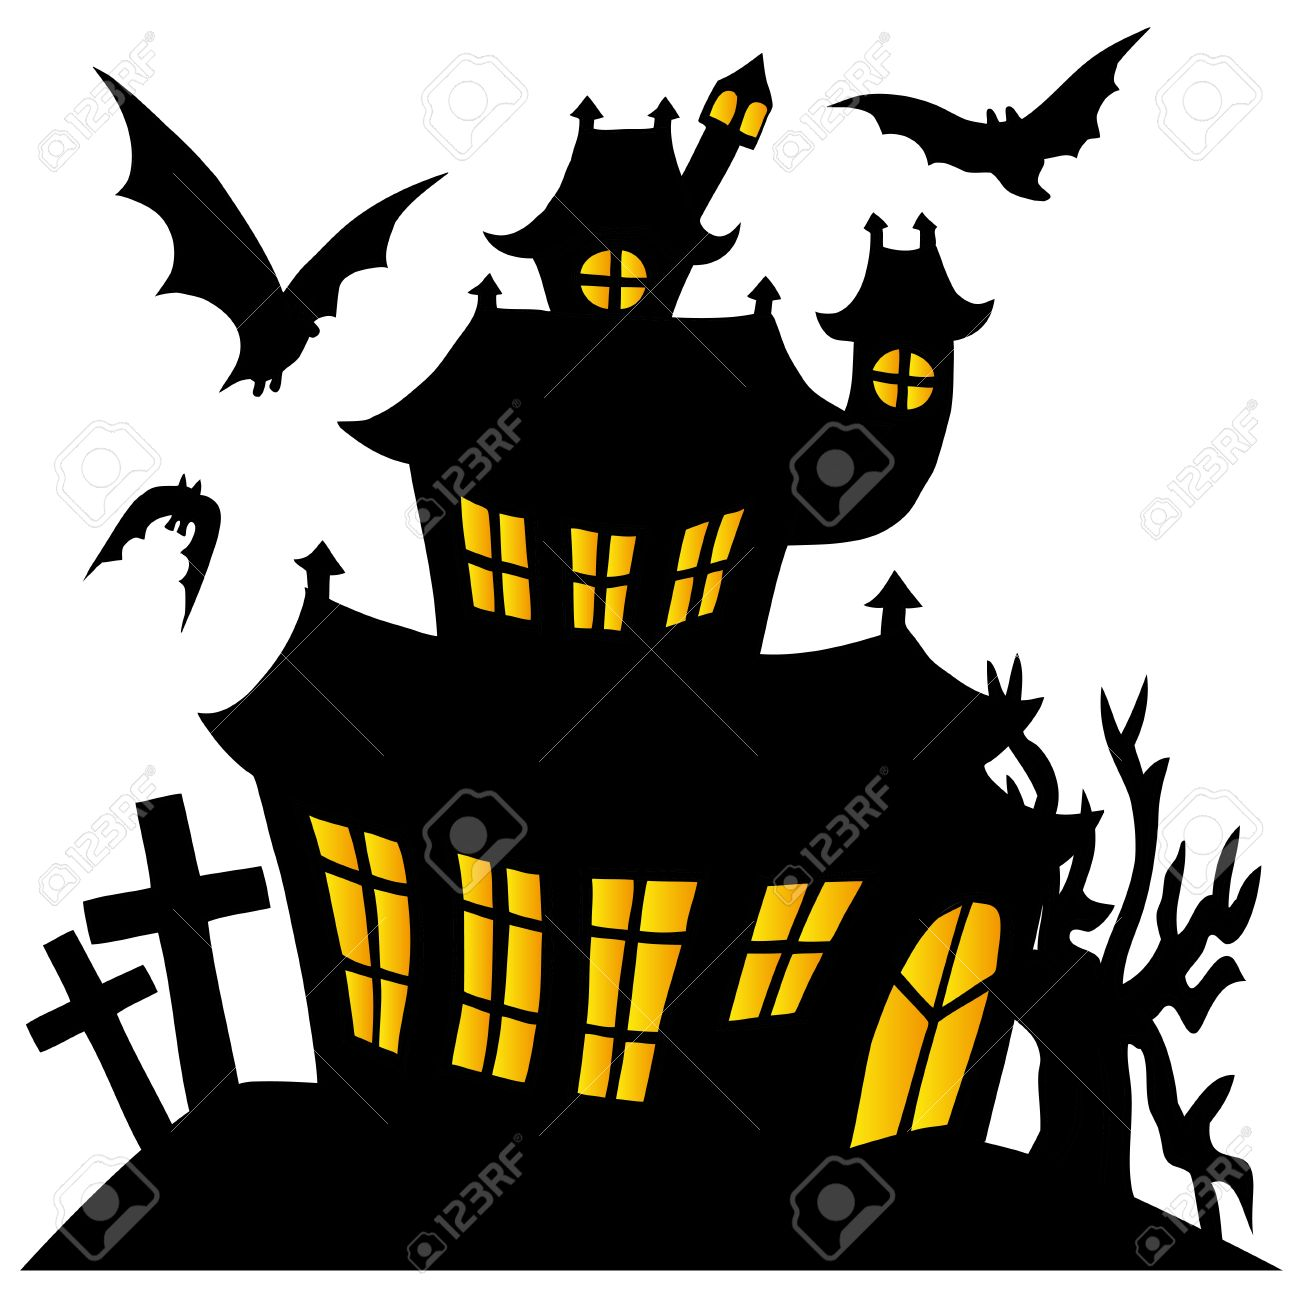 silhouette spooky house royalty free cliparts vectors and stock rh 123rf com